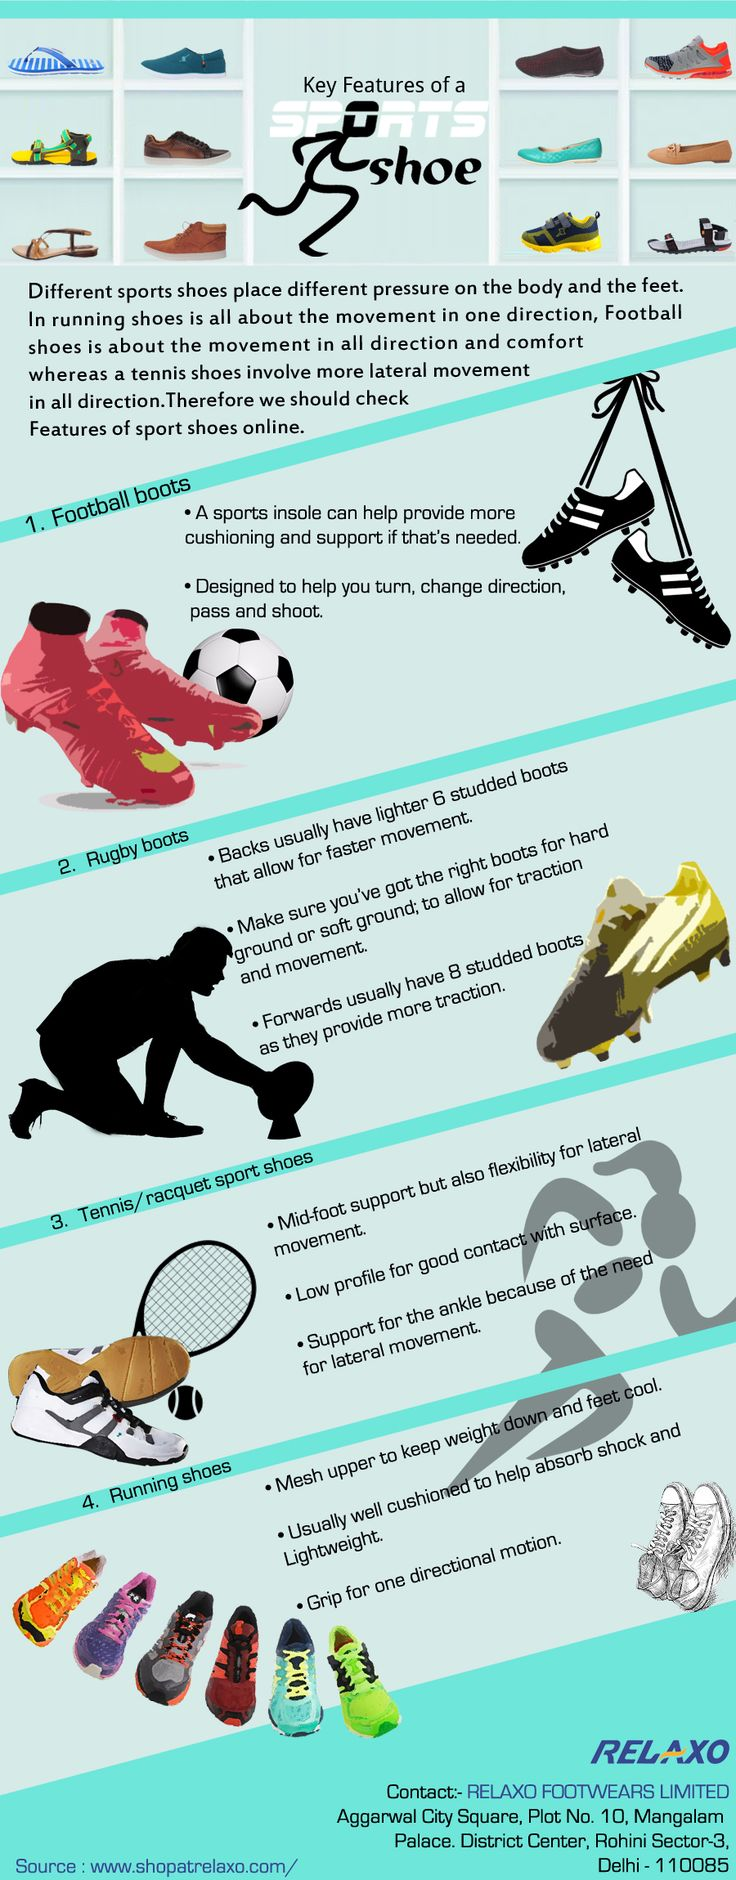 Key Features of a Sports Shoes Different sports shoes place different pressure on the body and the feet. In running shoes is all about the movement in one direction, Football shoes is about the movement in all direction and comfort whereas a tennis shoes involve more lateral movement in all direction. Therefore we should check Features of sport shoes online.  Key Features of Different types of Sports shoe –  1.Football boots : •a sports insole can help provide more cushioning and support…